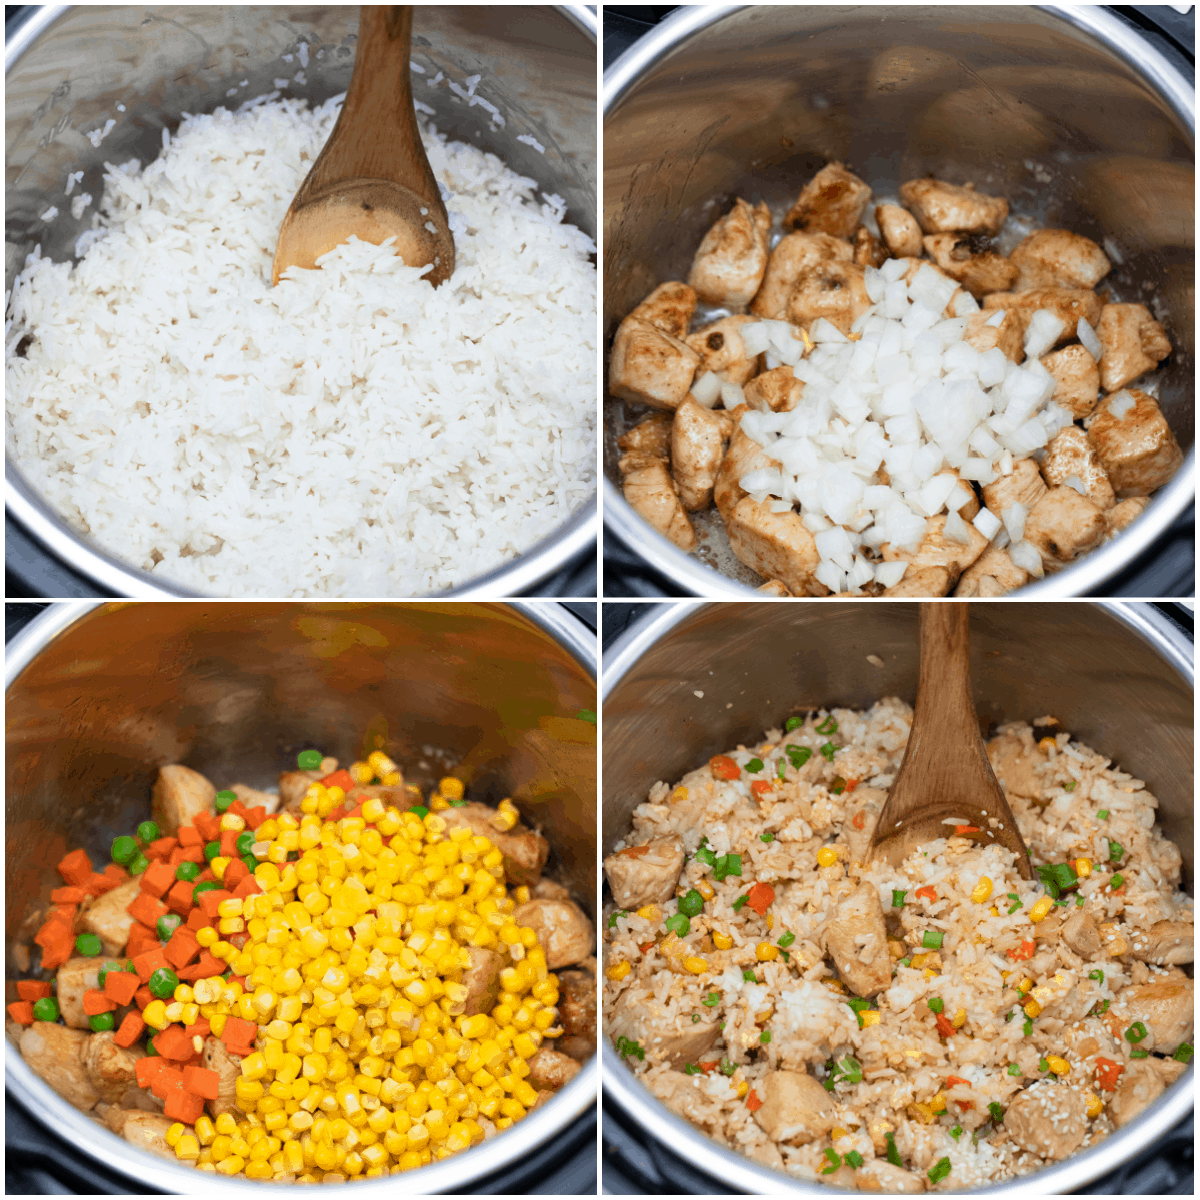 image collage showing the steps for making instant pot chicken fried rice